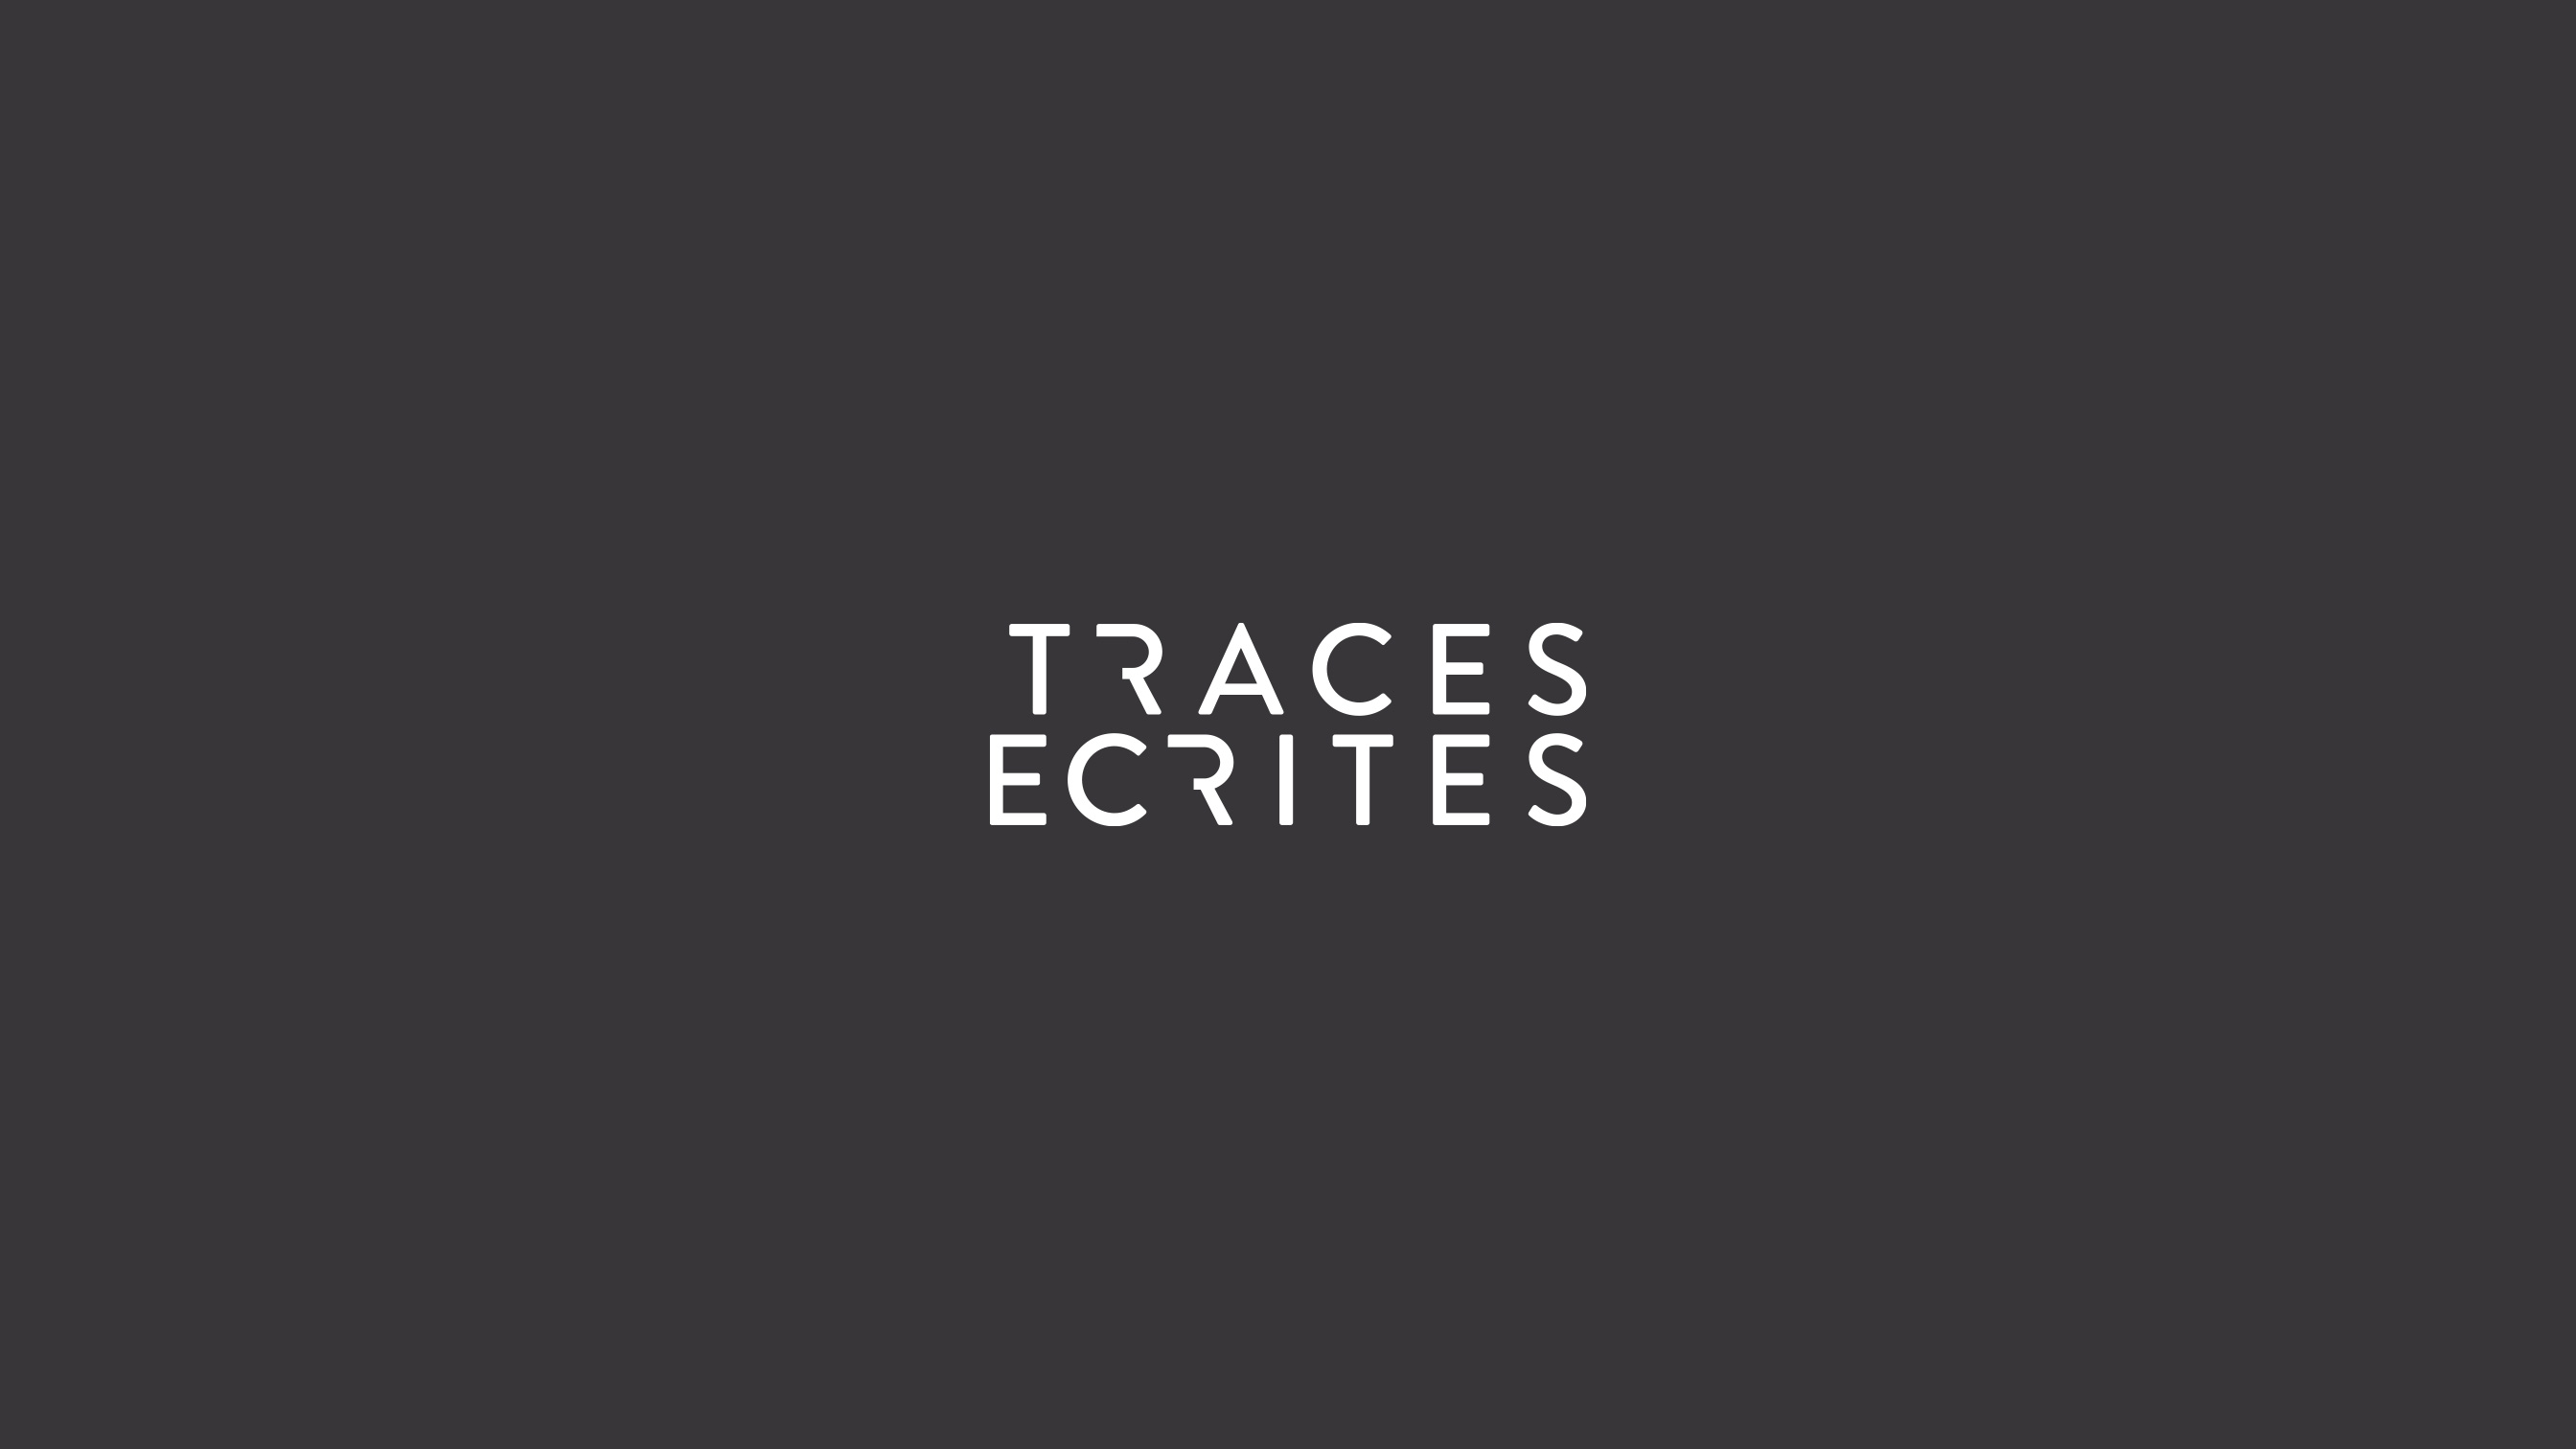 01-traces-ecrites-pikteo-webdesign-graphic-design-freelance-paris-bruxelles-londres